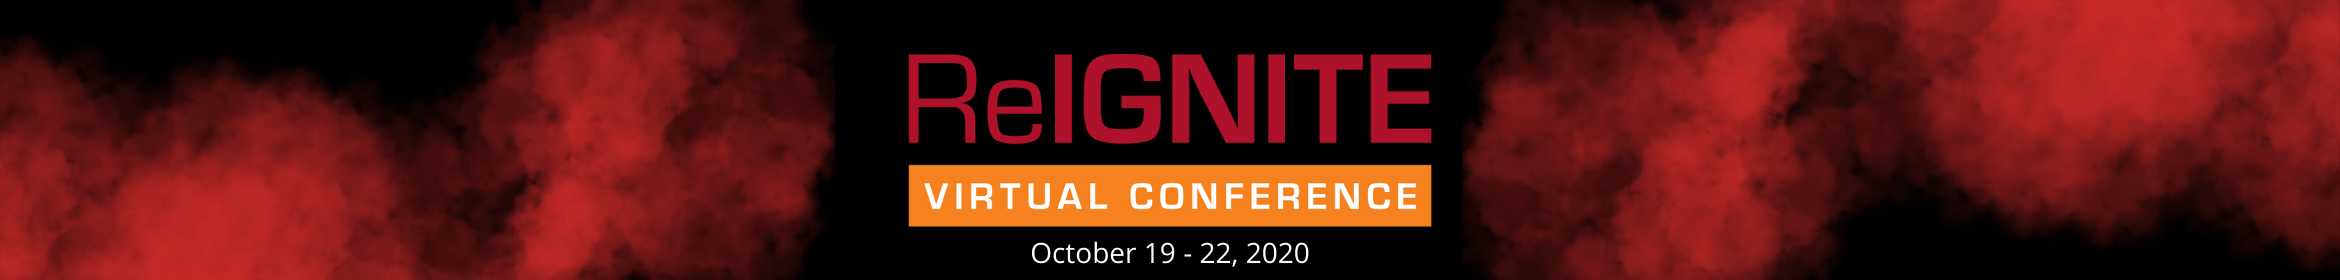 ReIGNITE Virtual Conference Main banner